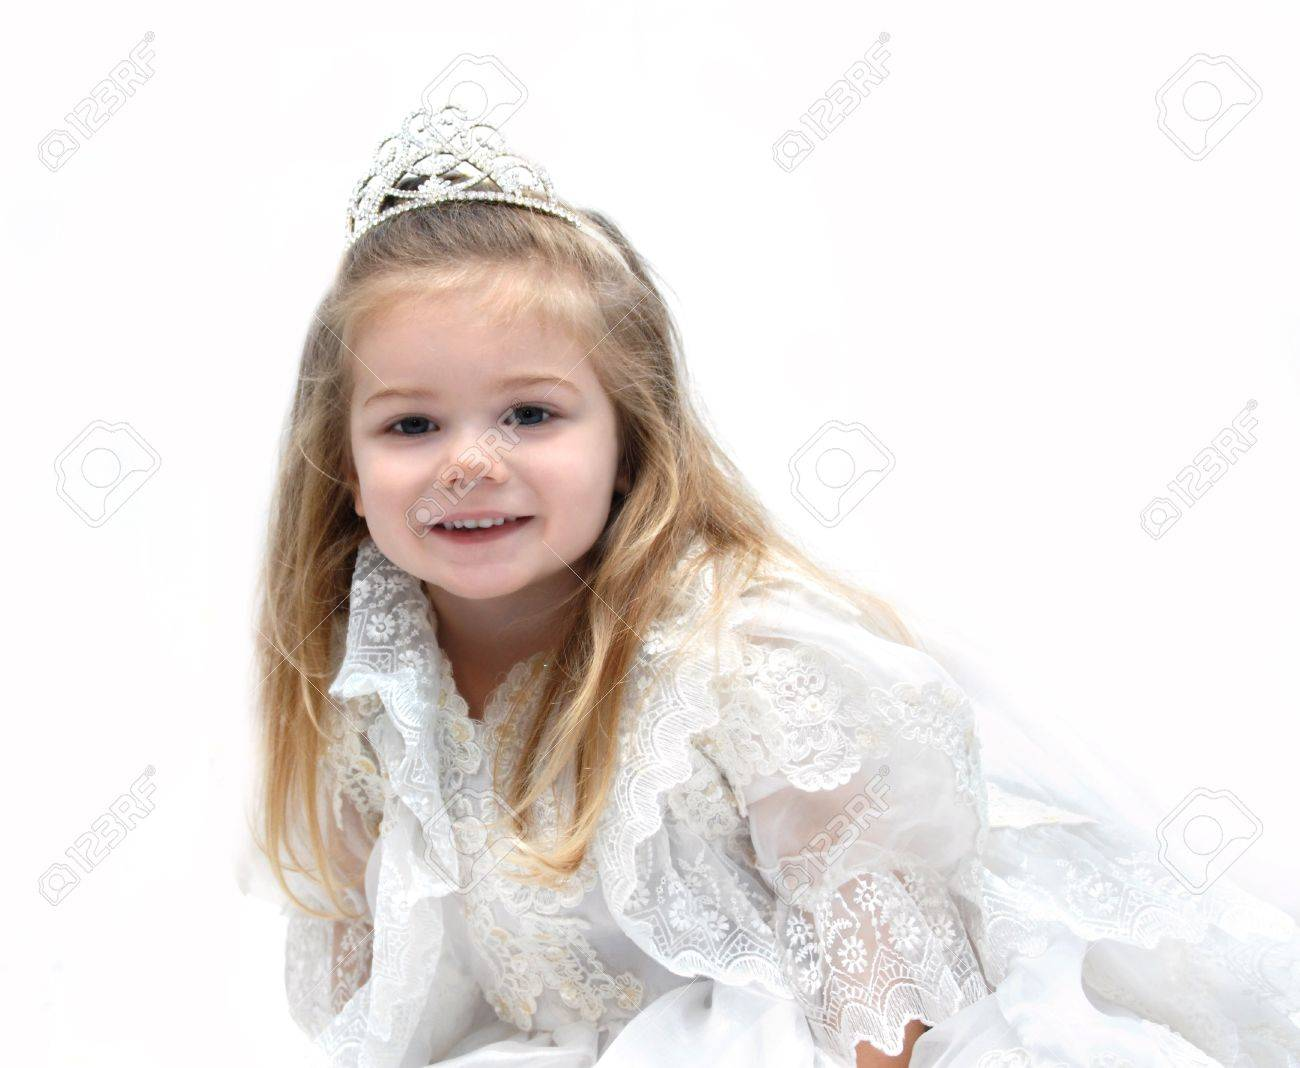 Little Girl Wears An Elegant Wedding Dress And Crown She Is.. Stock ...